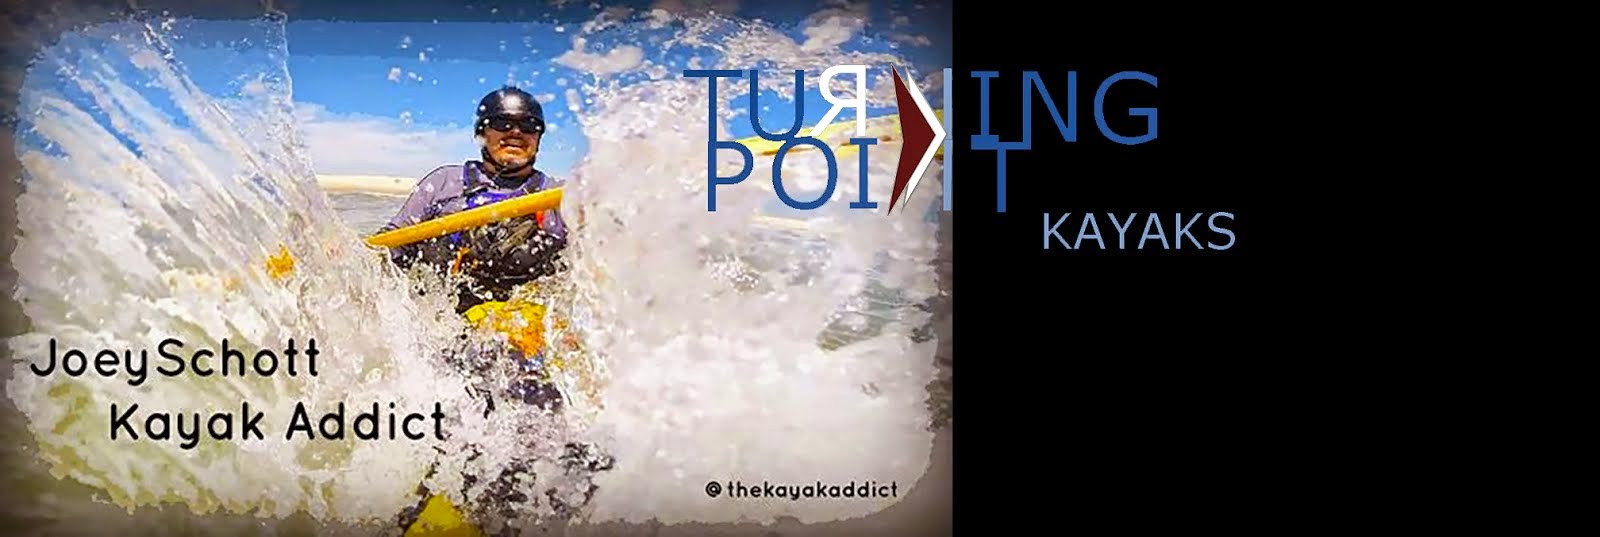 Turning Point Kayaks by Joey Schott--Kayak Addict